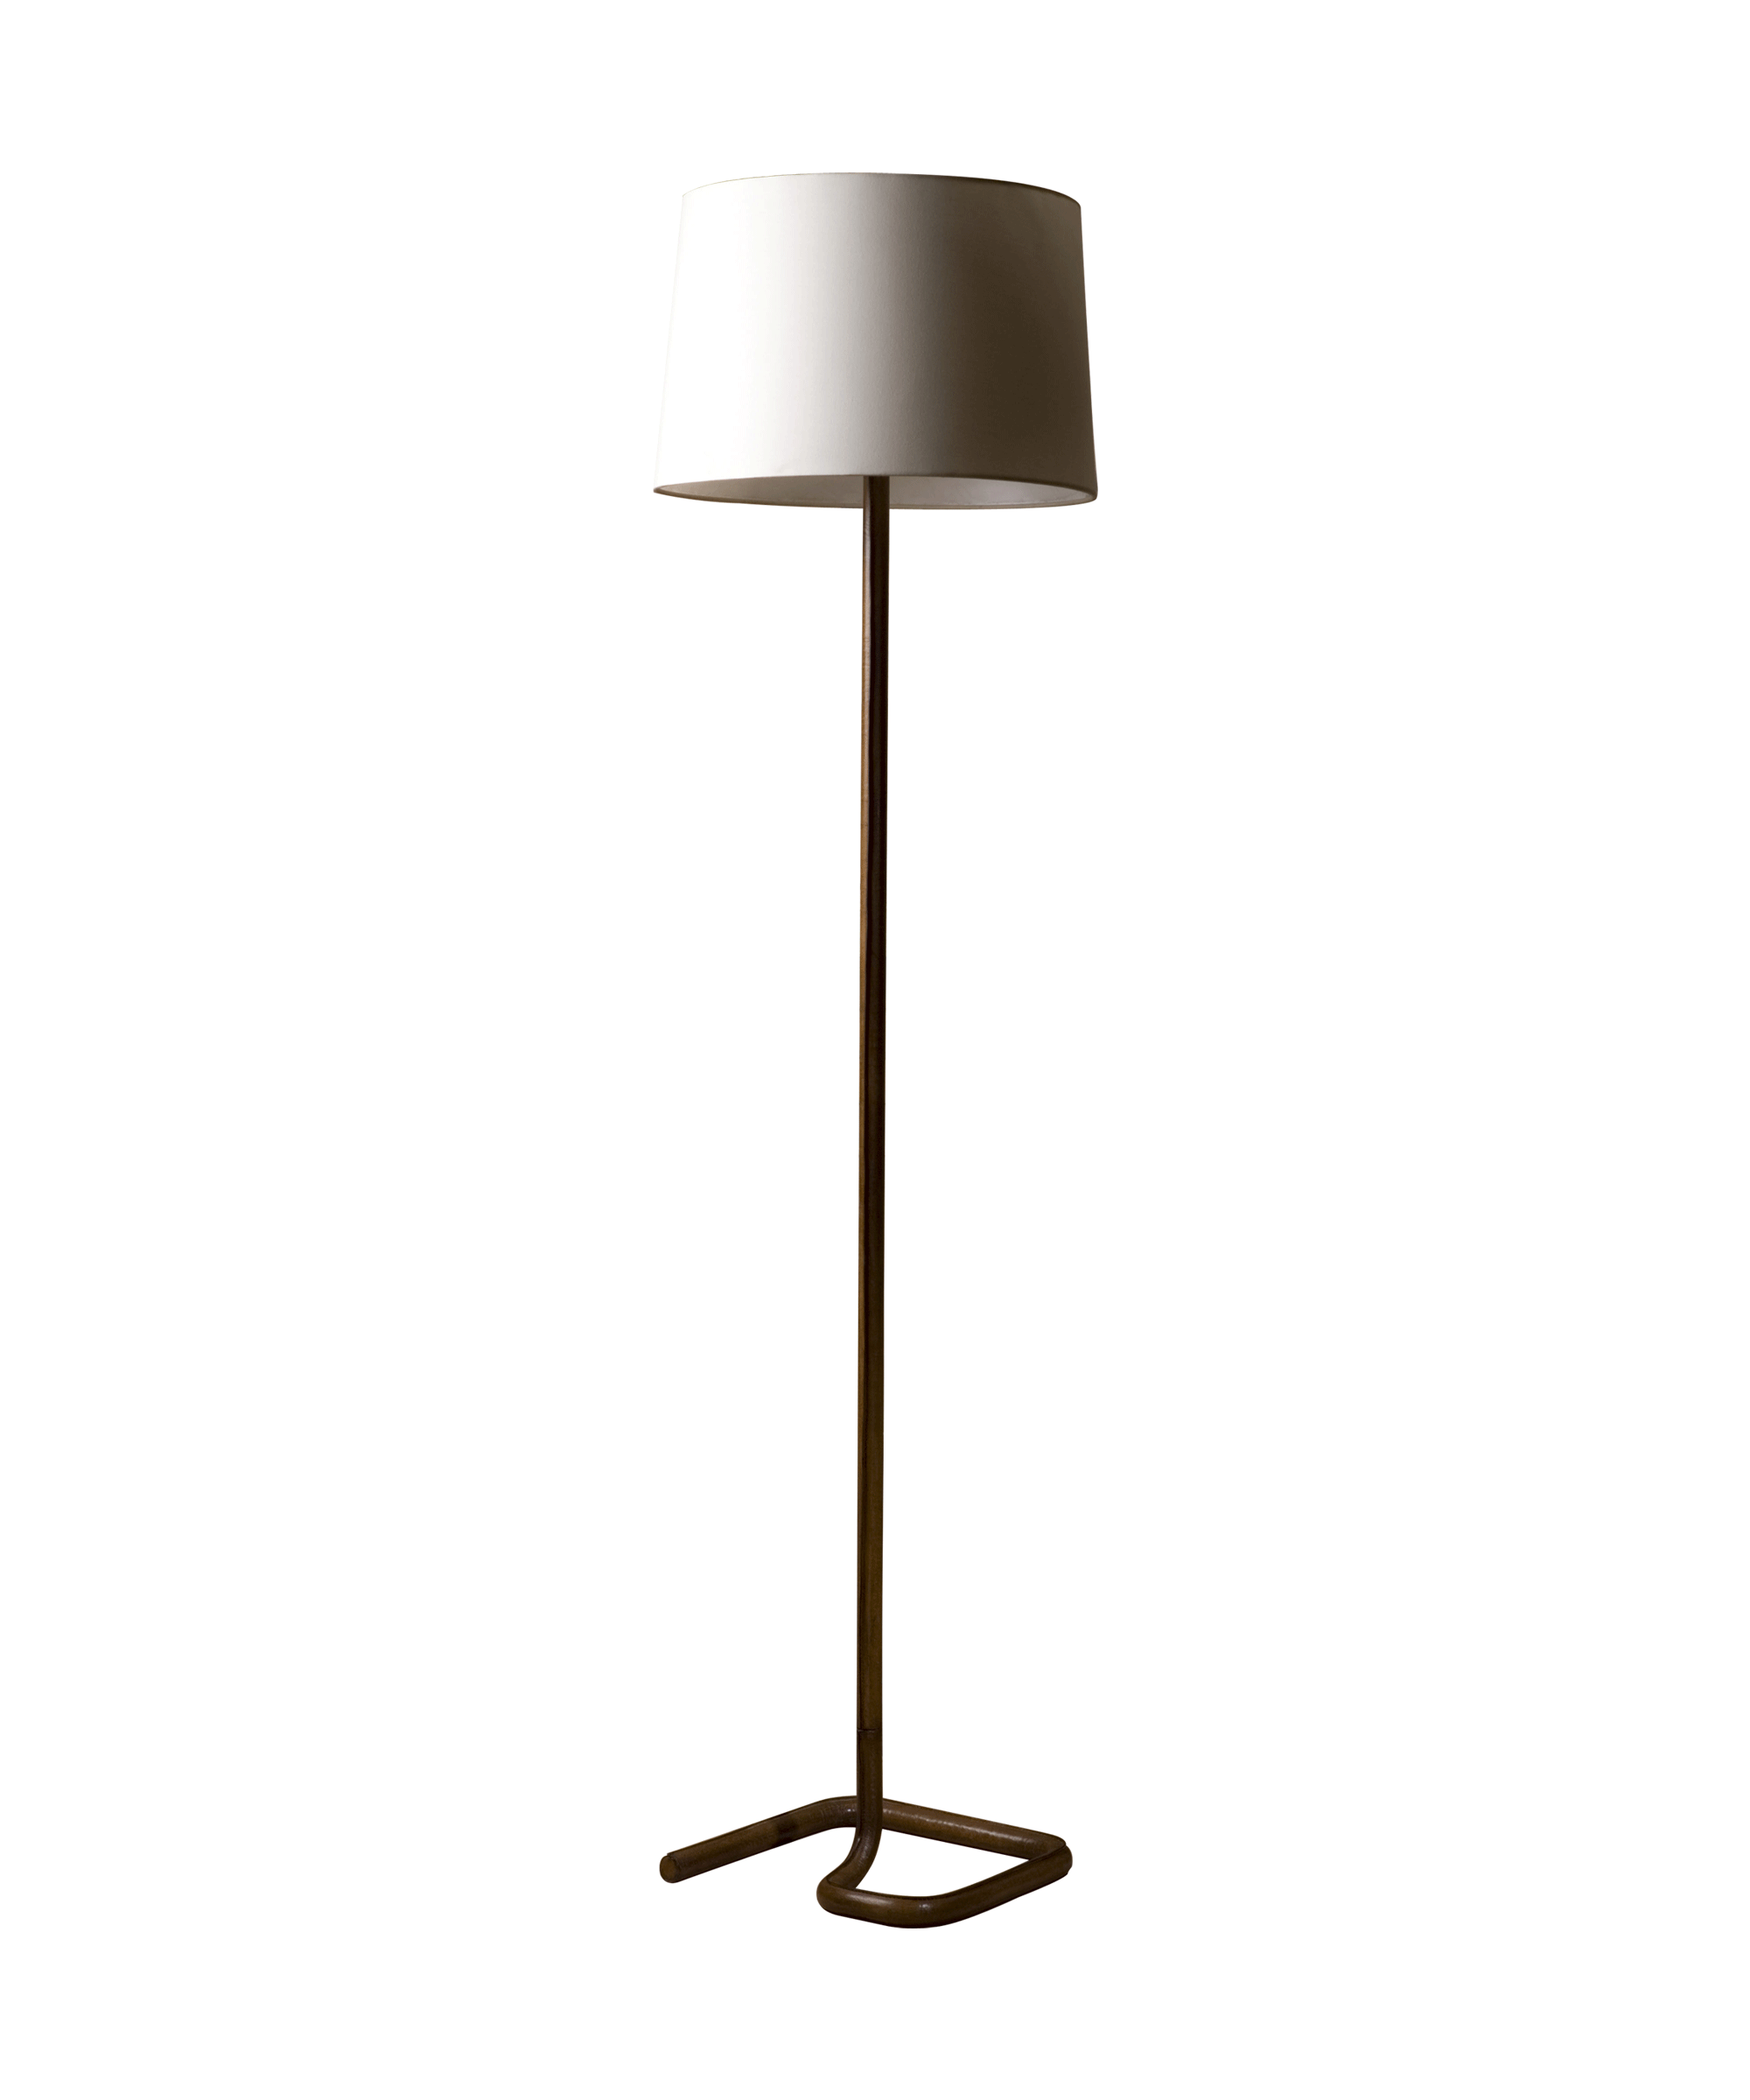 Floor lamp with white lamp shade